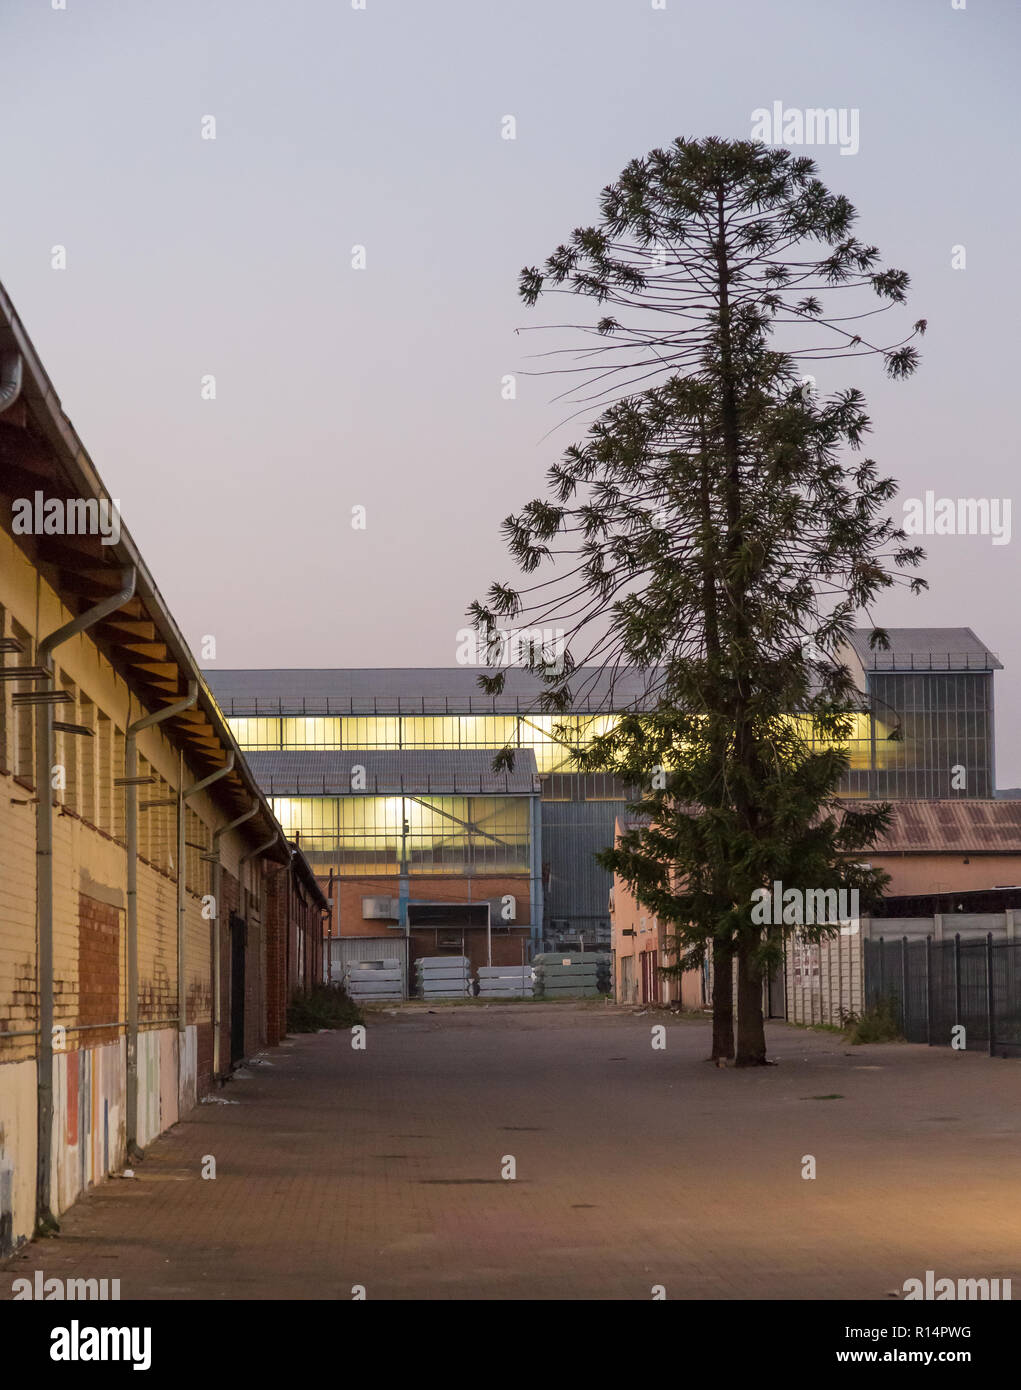 Pretoria west, the industrial side of Pretoria, South Africa - Stock Image